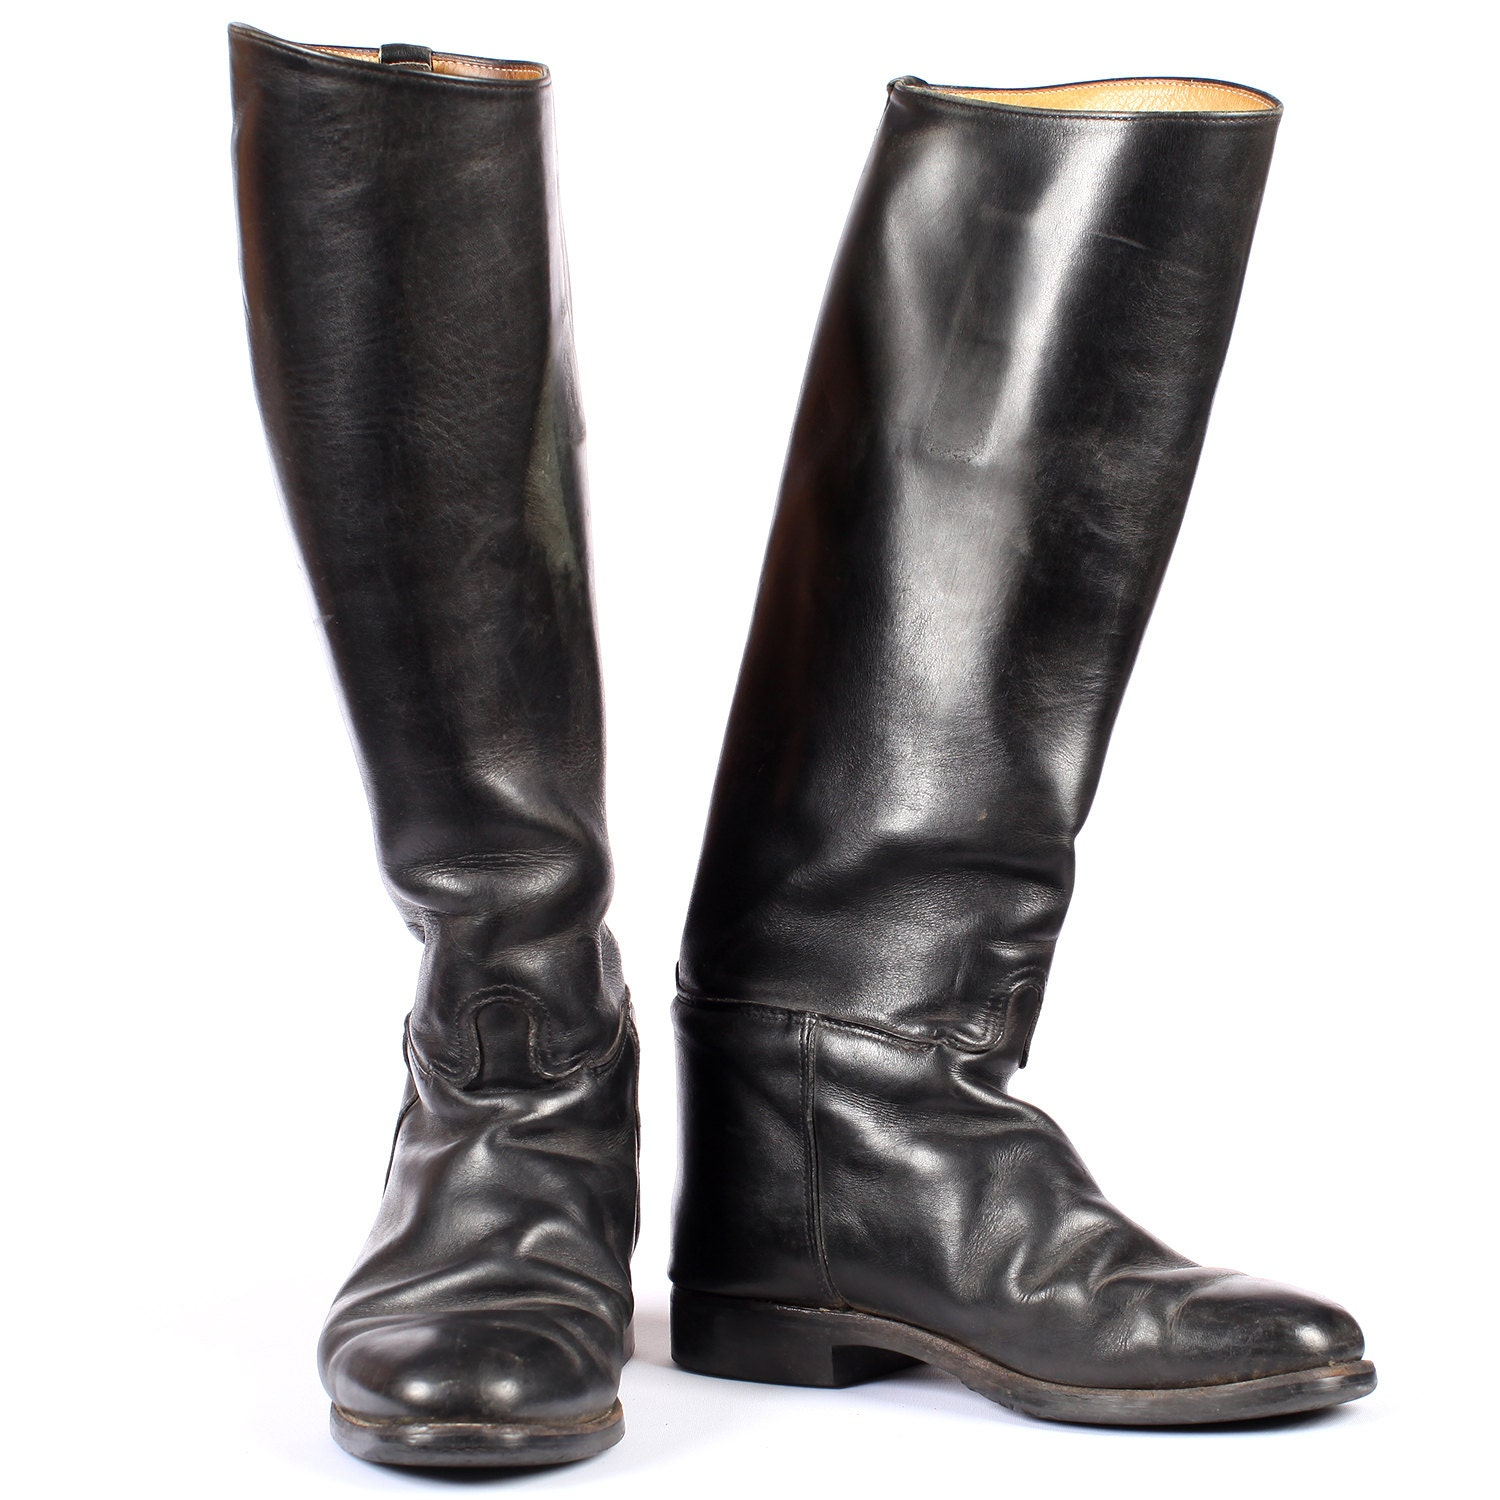 Mens Riding Boots 117